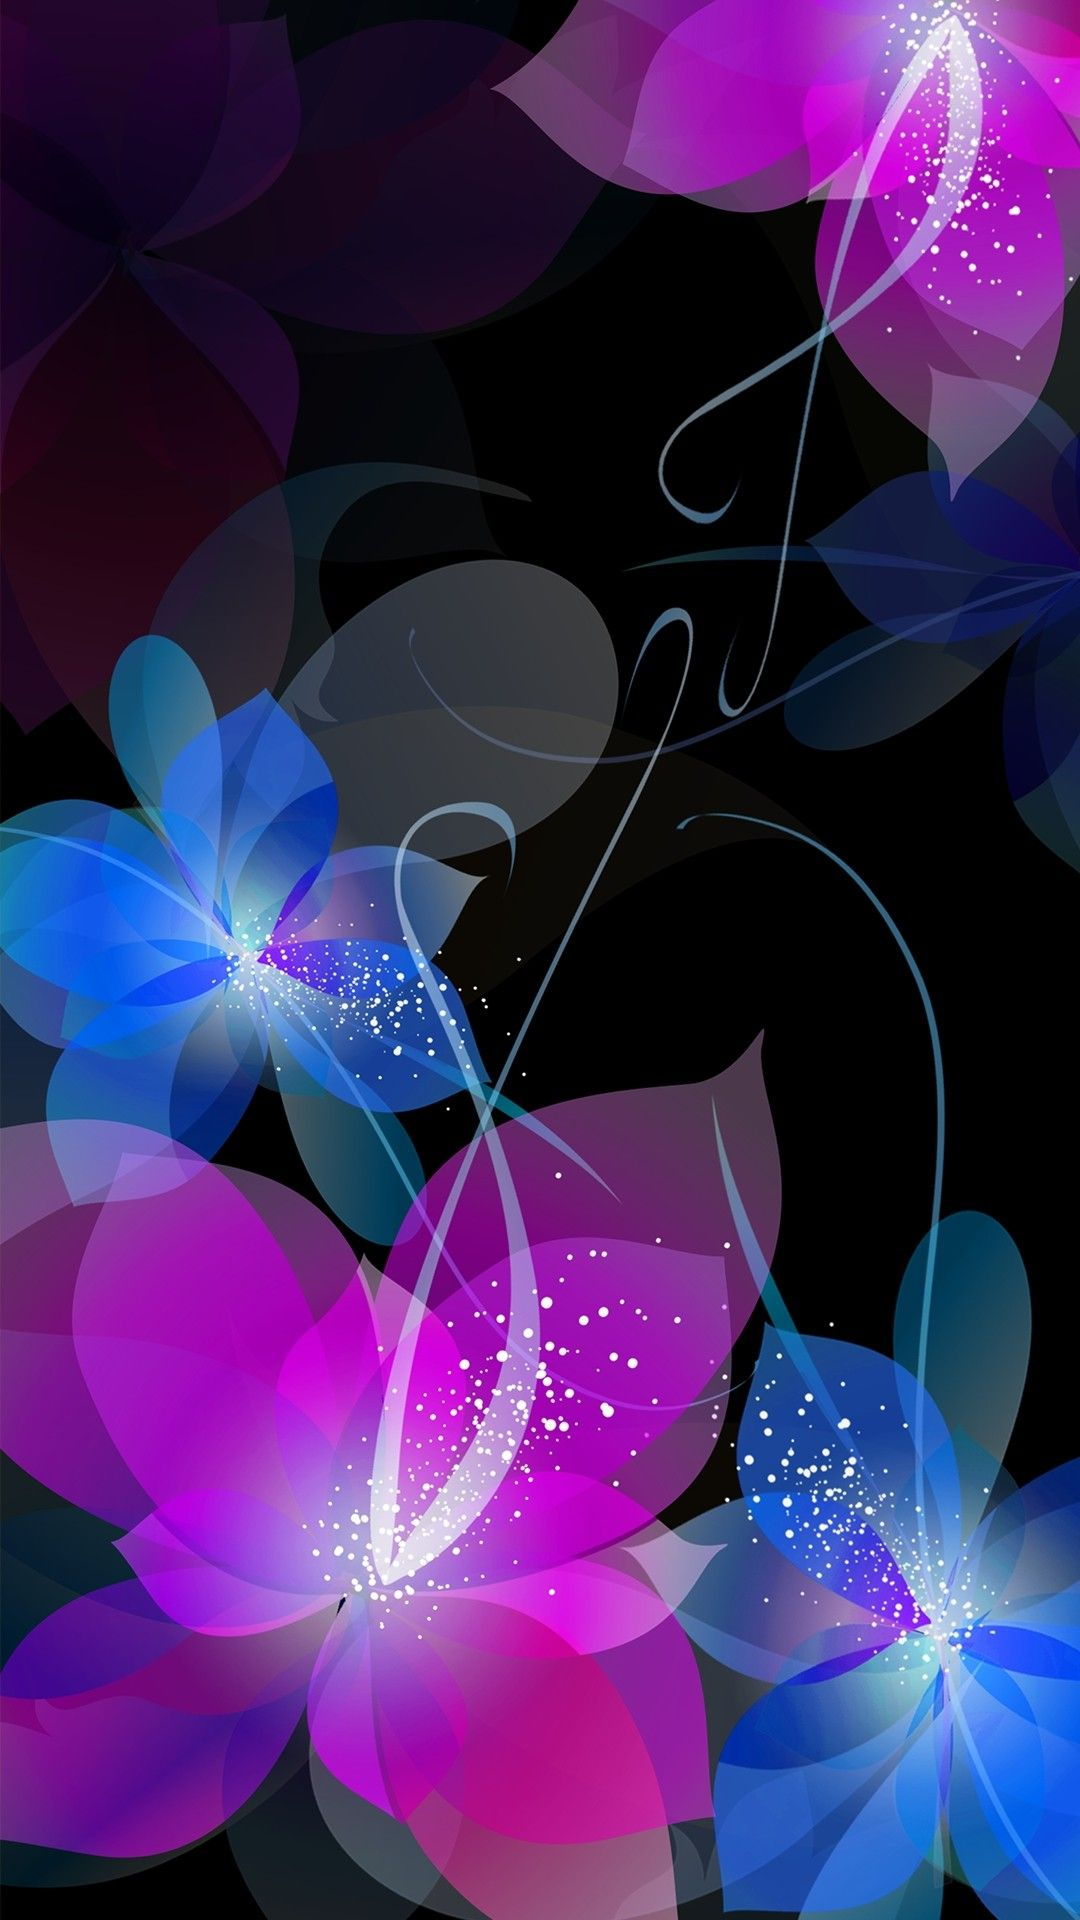 Smartphonewallpaper hd phone wallpapers cool backgrounds for iphone pretty mobile wallpaper also android misc purple hearts pattern grey background rh pinterest